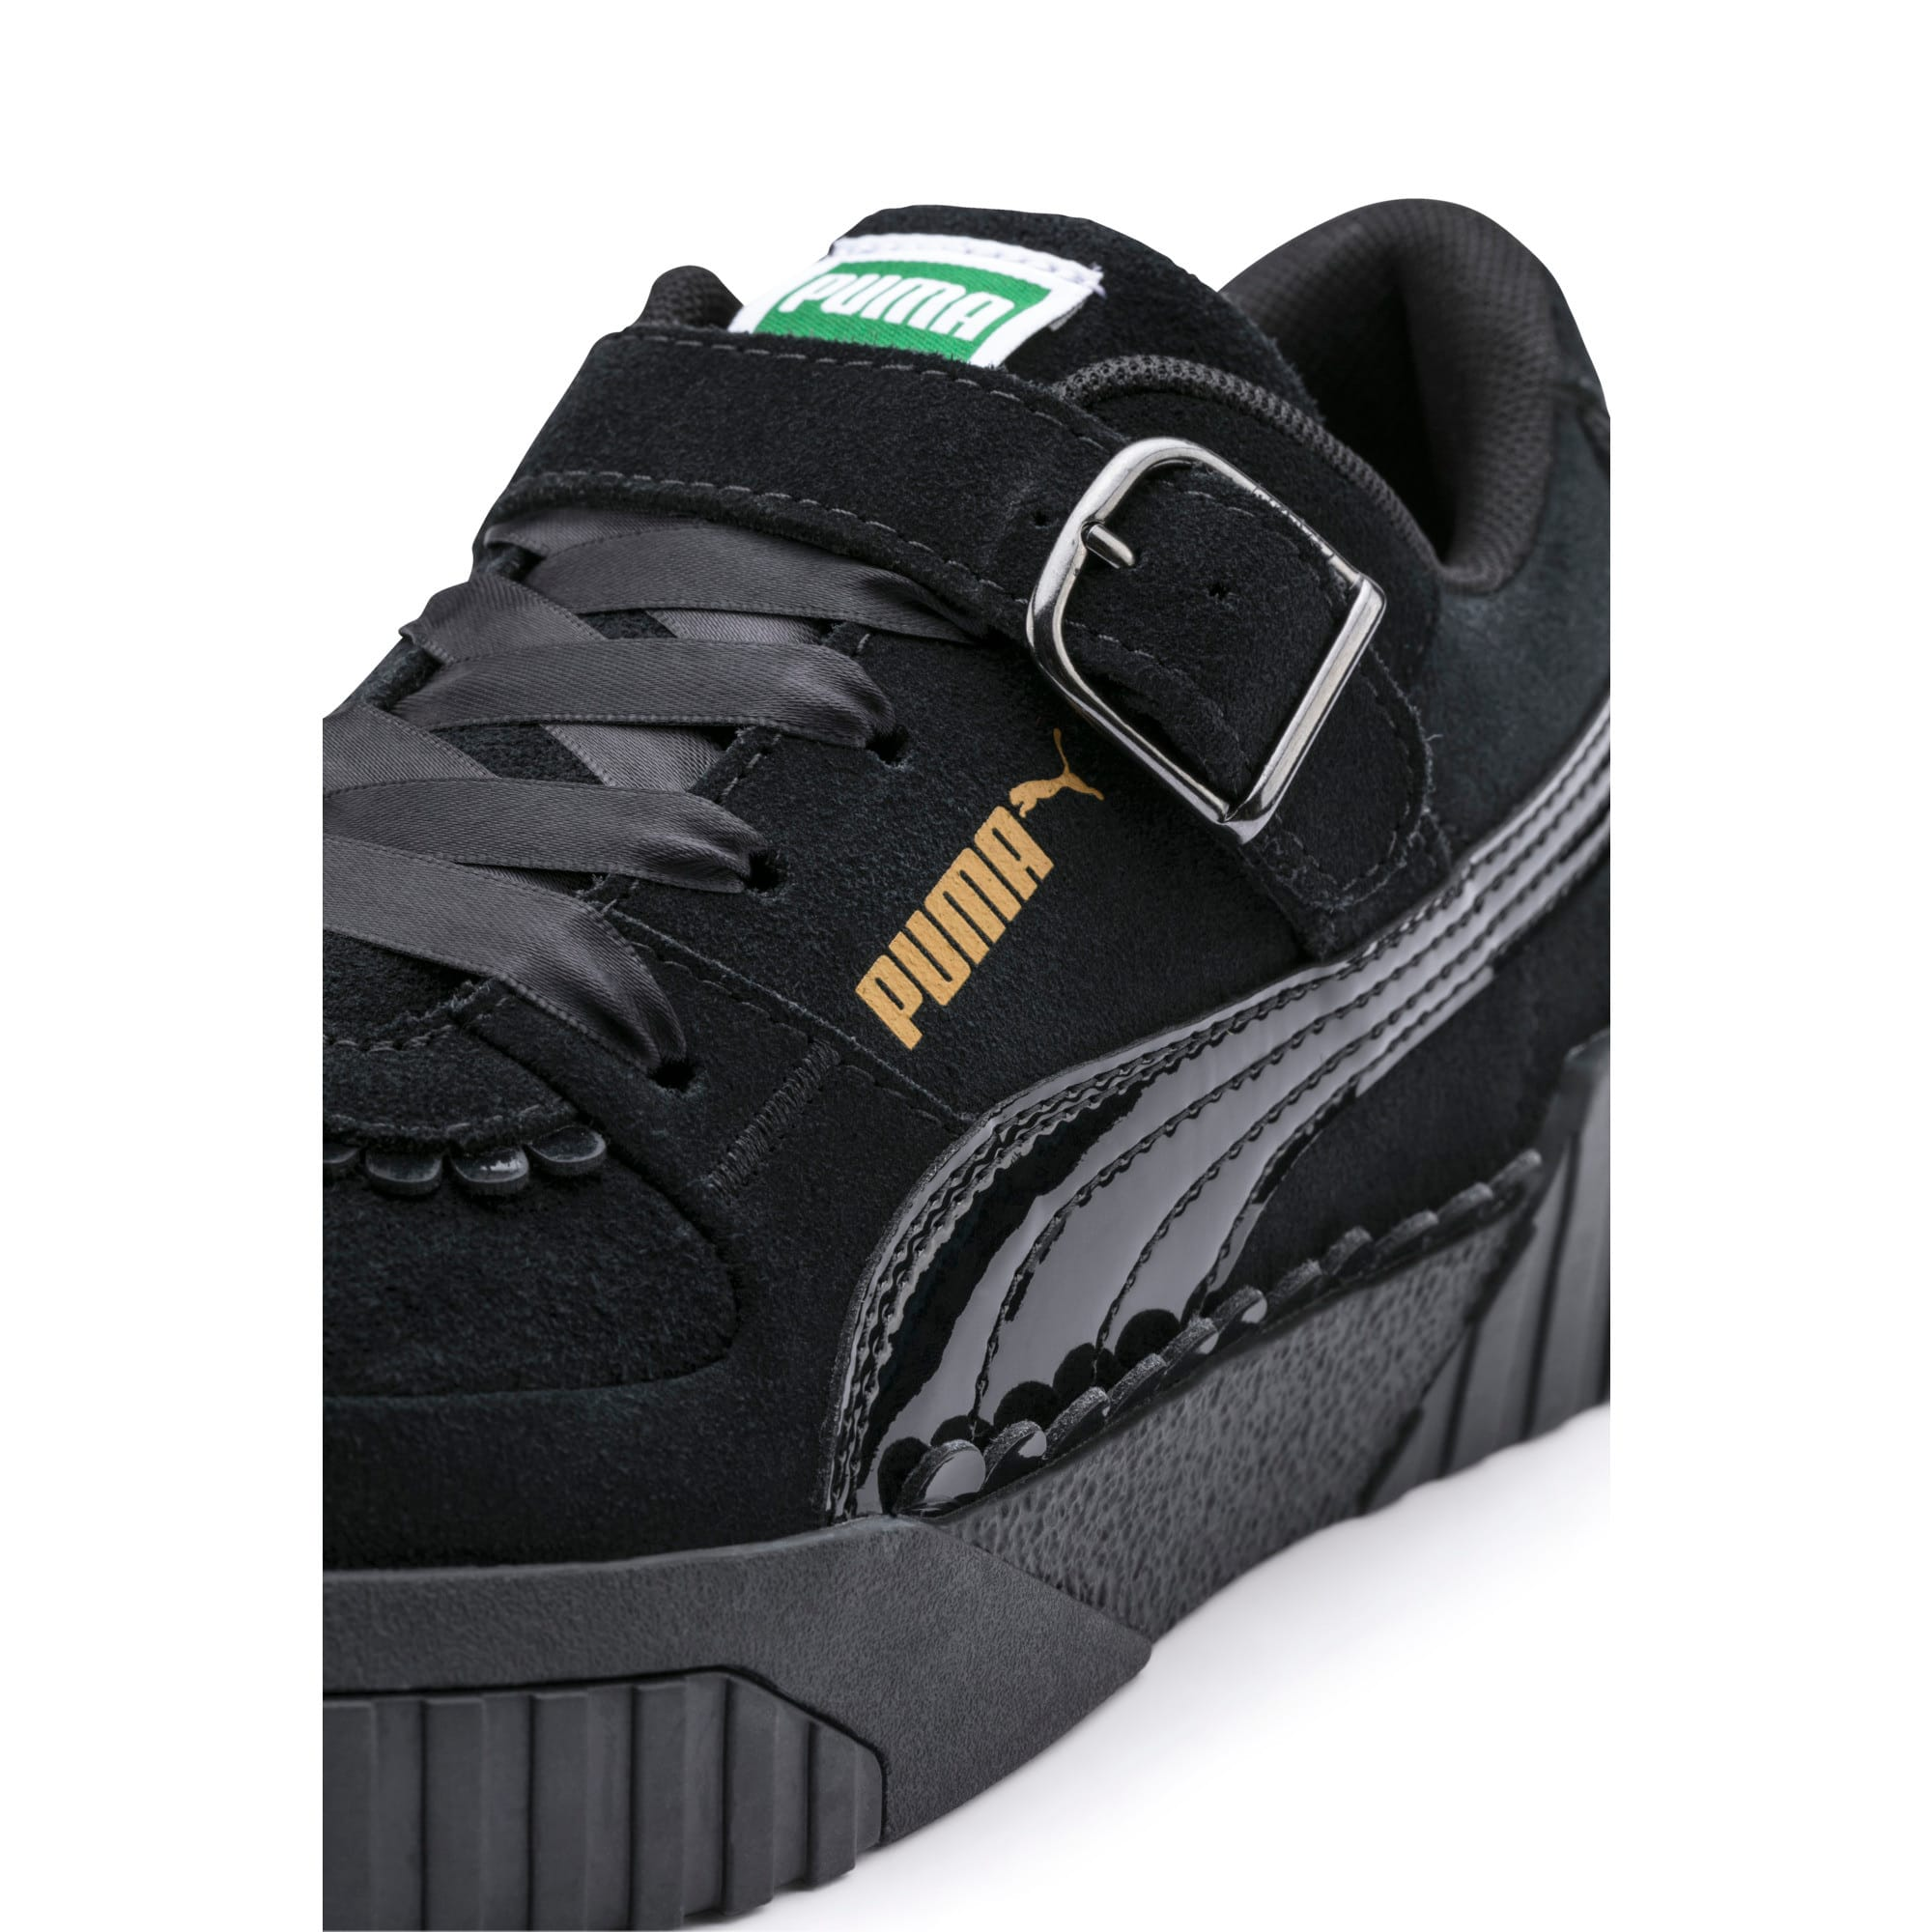 Thumbnail 10 of PUMA x TYAKASHA Cali Women's Sneakers, Puma Black, medium